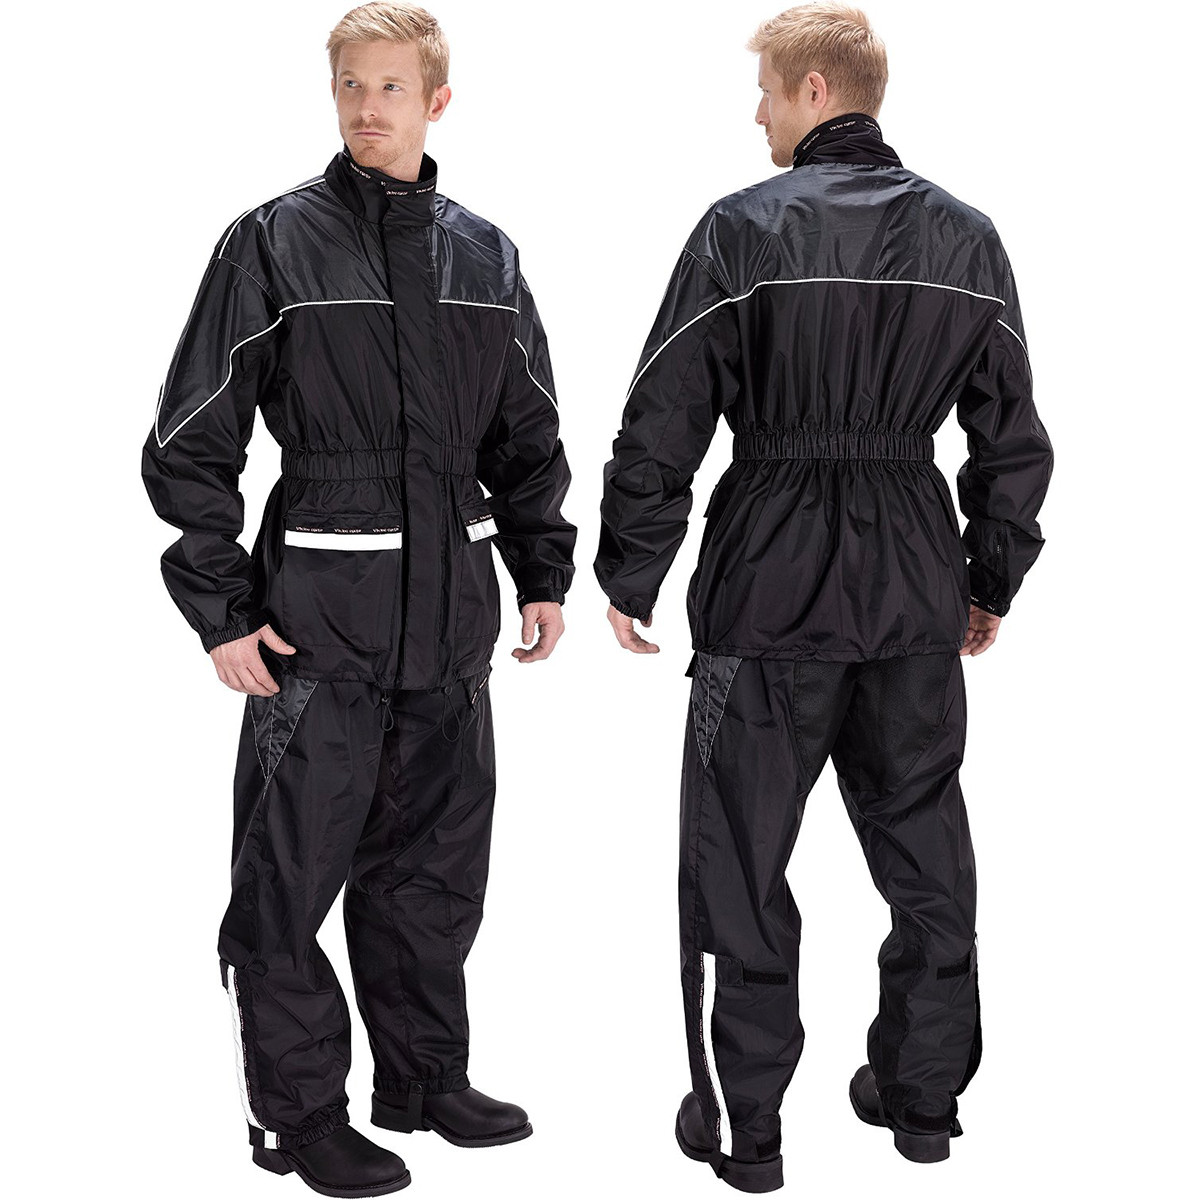 motor cycle rain suits Mens motorcycle rain suits provide the best protection in the rain in orange,  green, night reflective, and comfortable mens motorcycle rainsuits at blaze  leather.